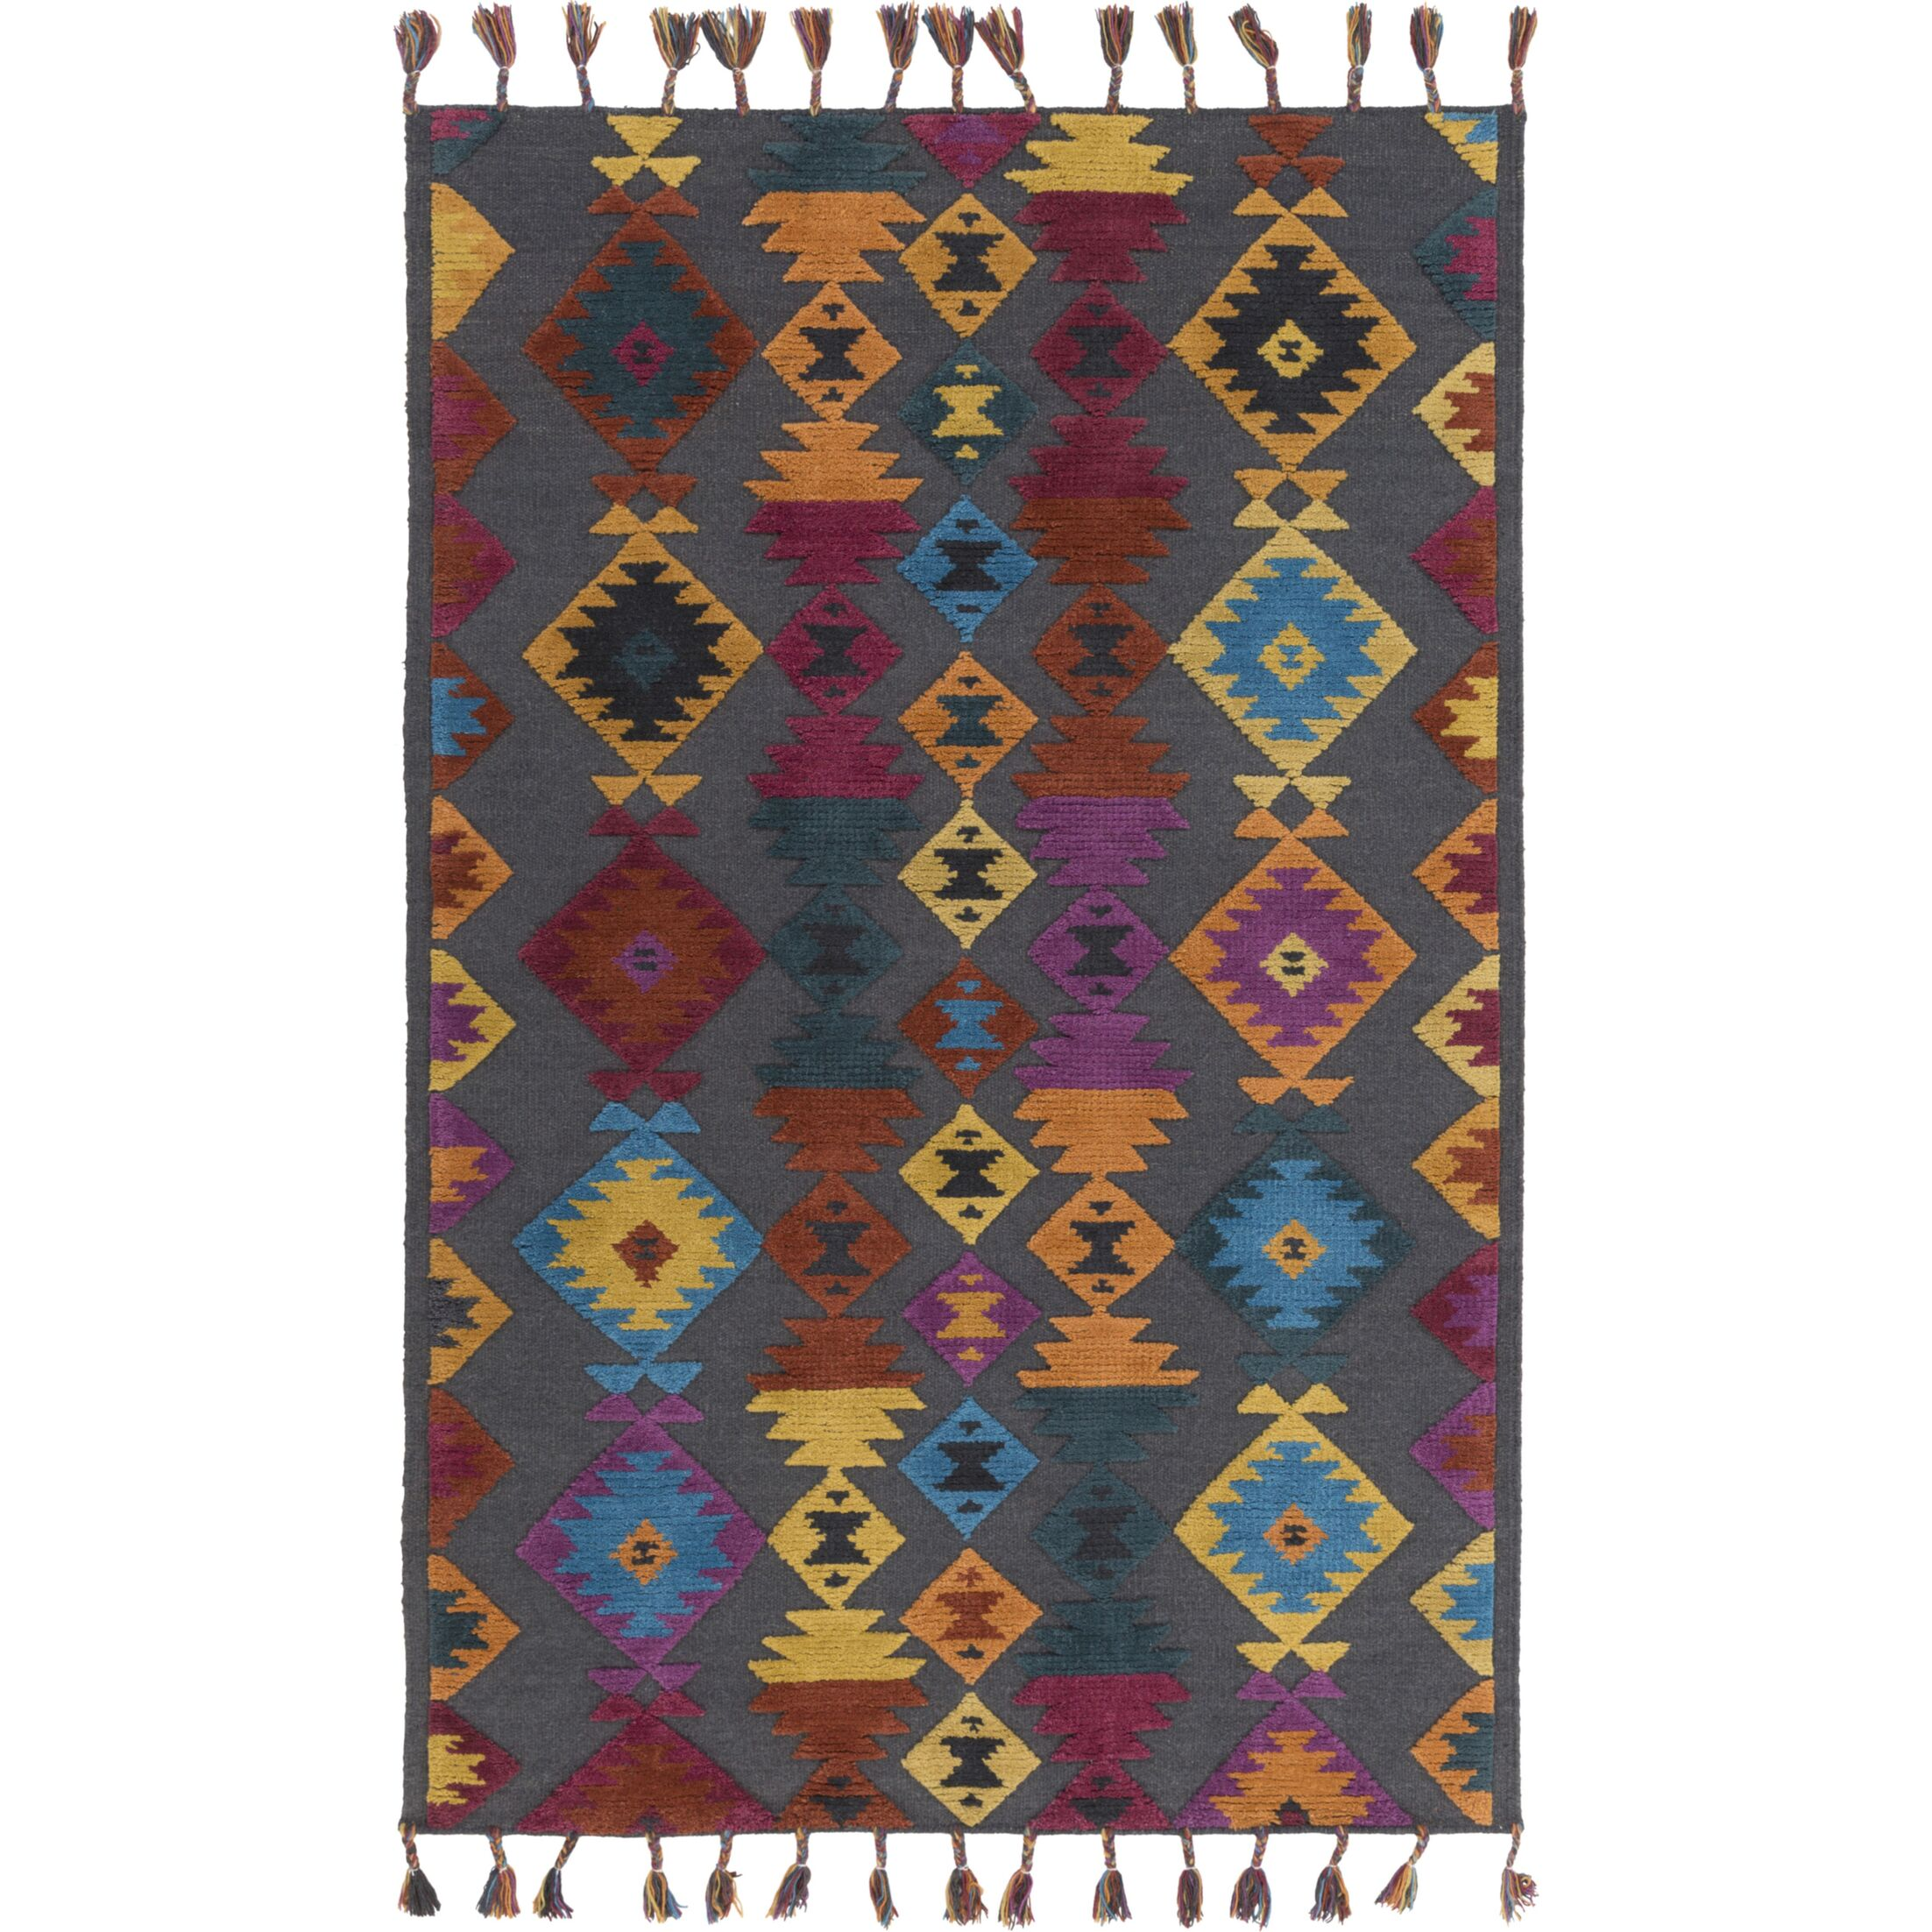 Sneed Geometric Hand-Woven Multi Color Area Rug Rug Size: Rectangle 4' x 6'